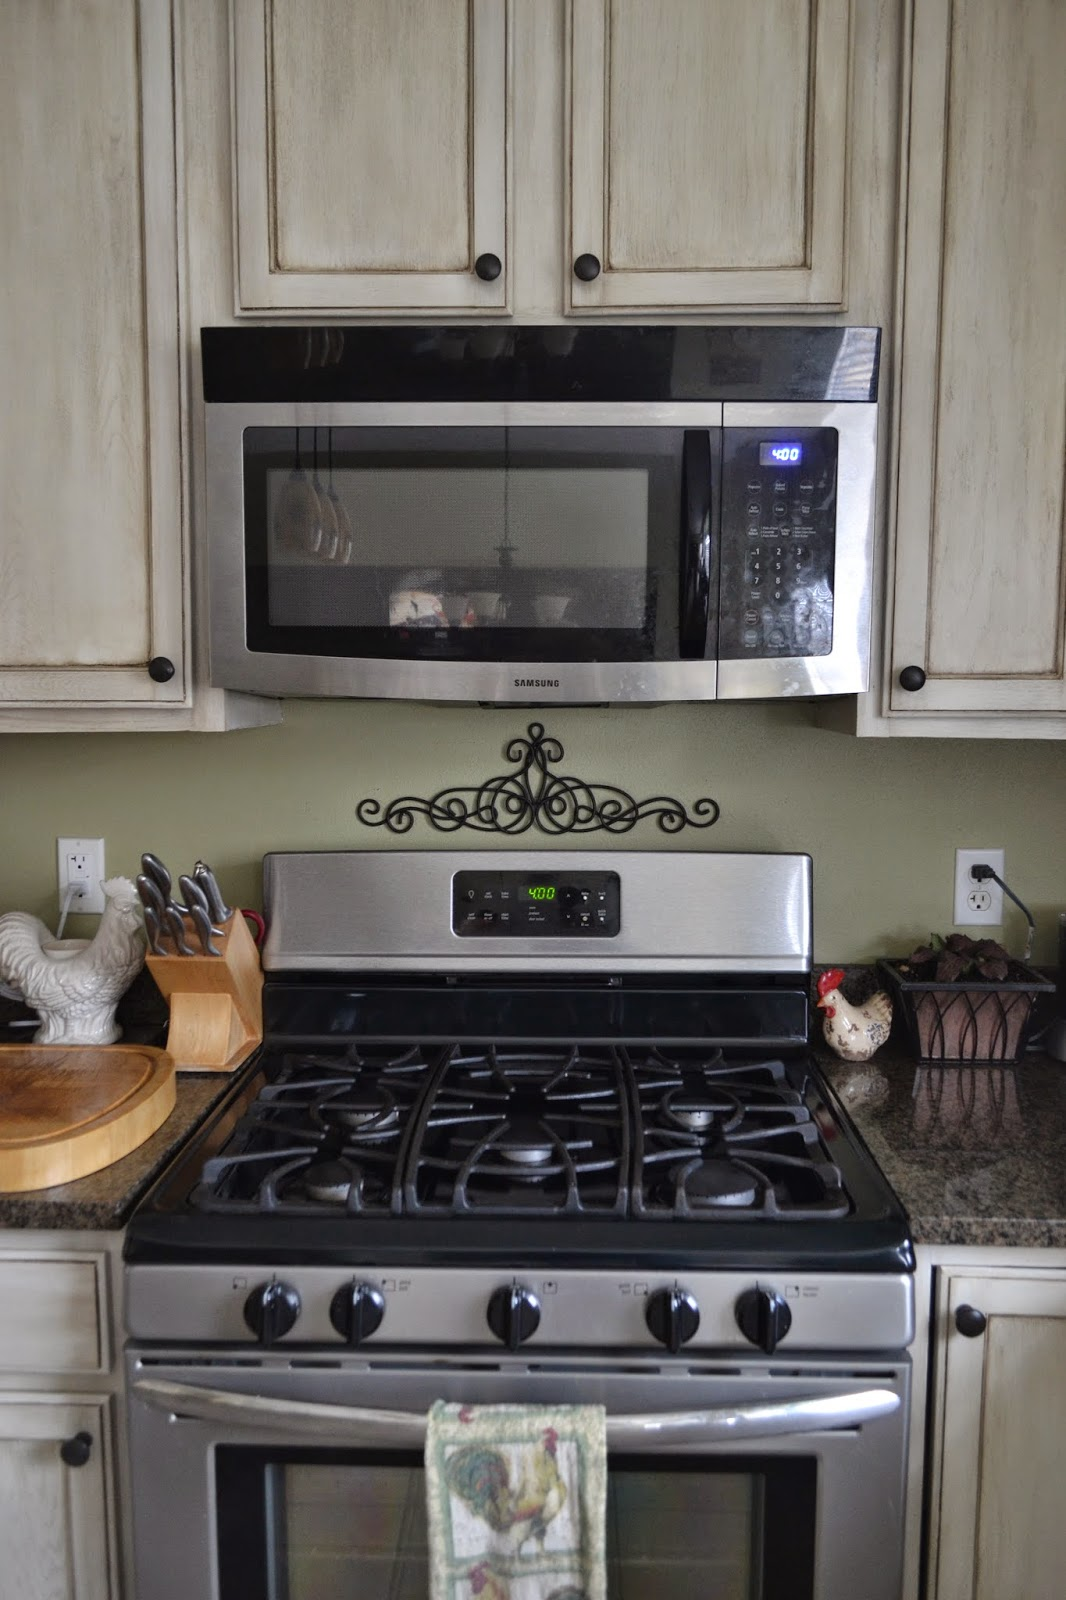 Thrifty Artsy Girl: DIY Tuscan Above the Range Microwave ...